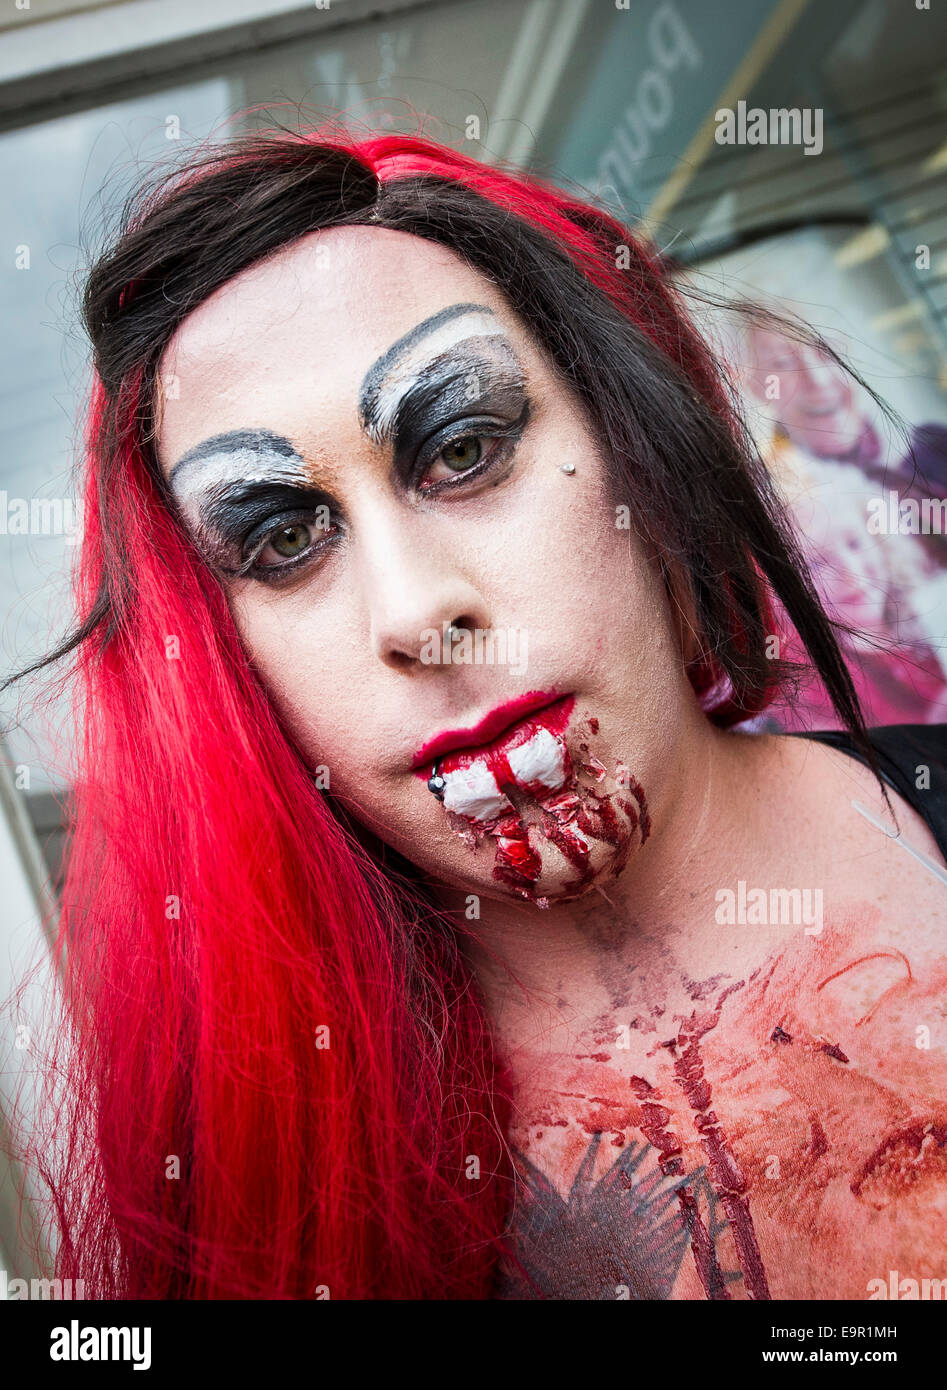 Newquay, Cornwall. 31st October 204.  Zombies loiter around in Newquay High Street. Credit:  Gordon Scammell/Alamy - Stock Image